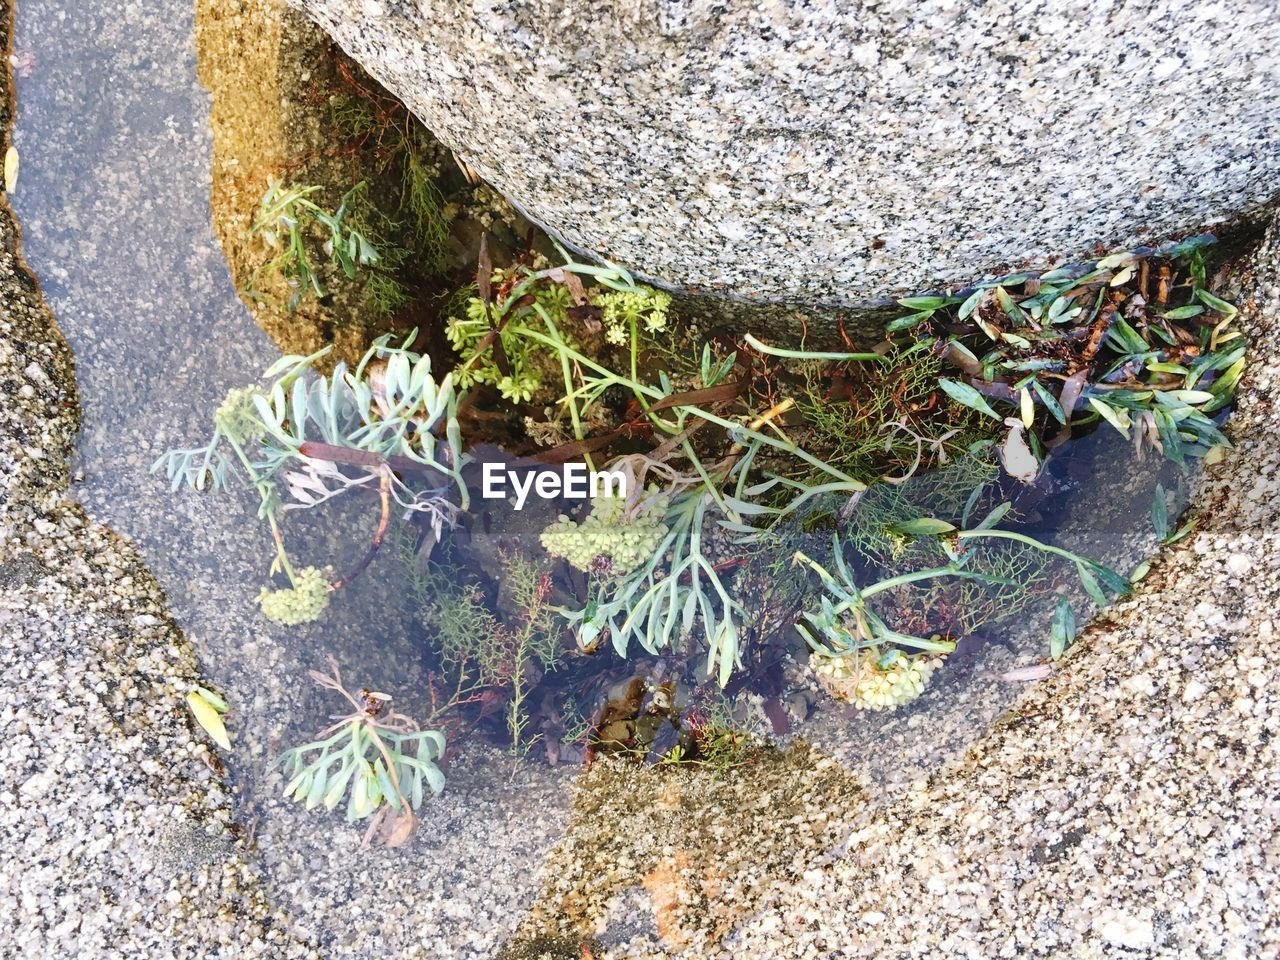 rock, plant, solid, high angle view, day, nature, no people, rock - object, growth, plant part, leaf, outdoors, land, close-up, stone - object, moss, beauty in nature, textured, stone, field, concrete, lichen